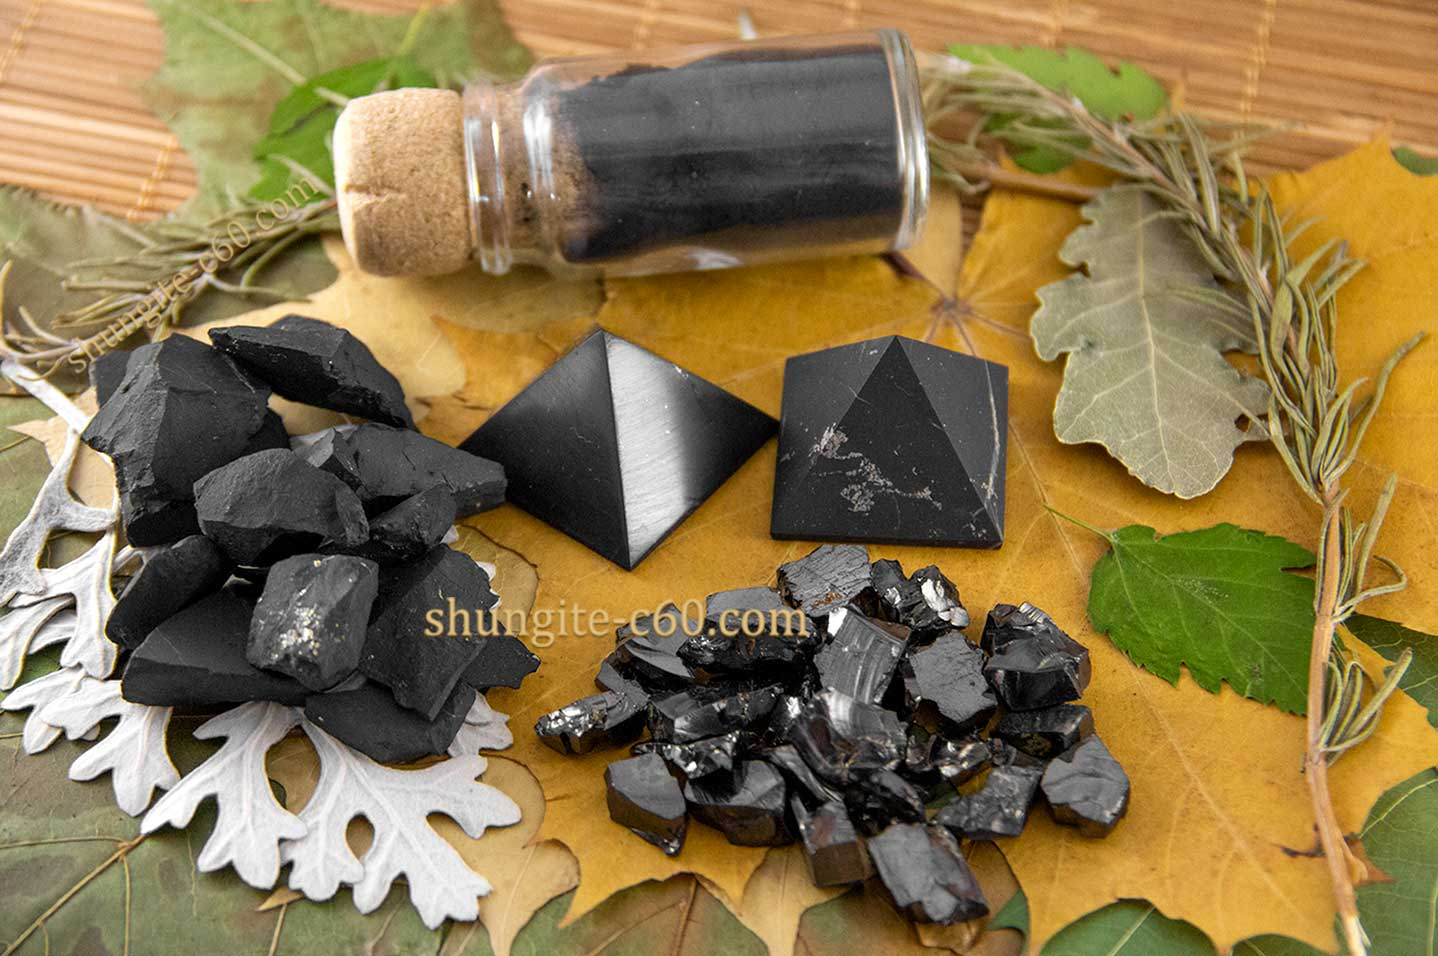 authentic shungite products